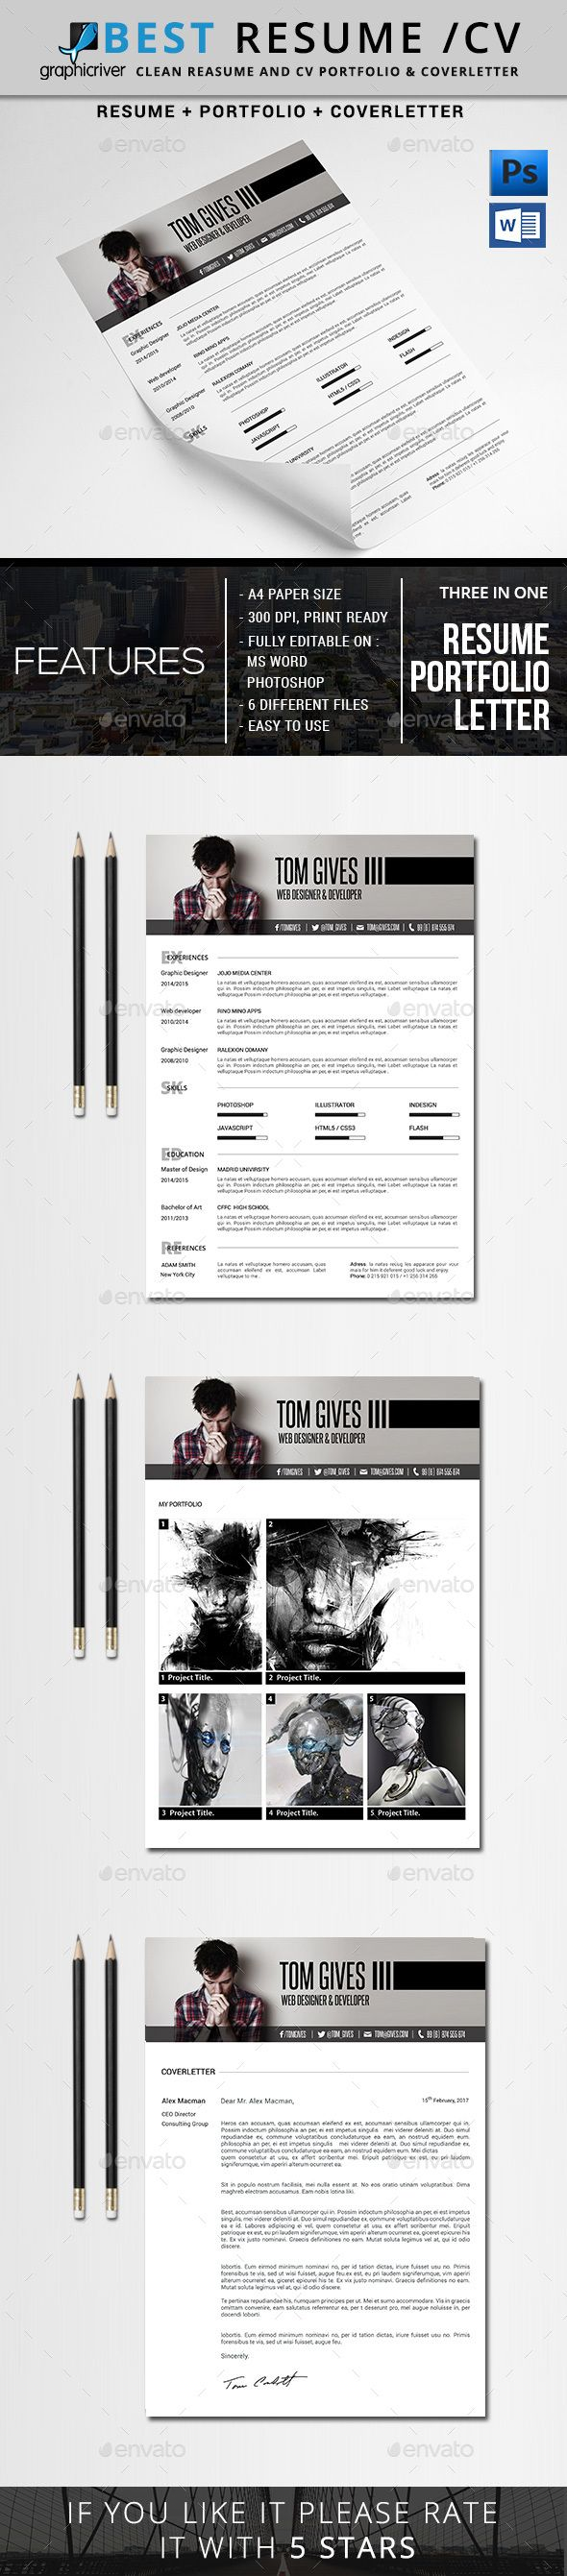 45 best Resumes images on Pinterest | Cv template, Cv resume ...